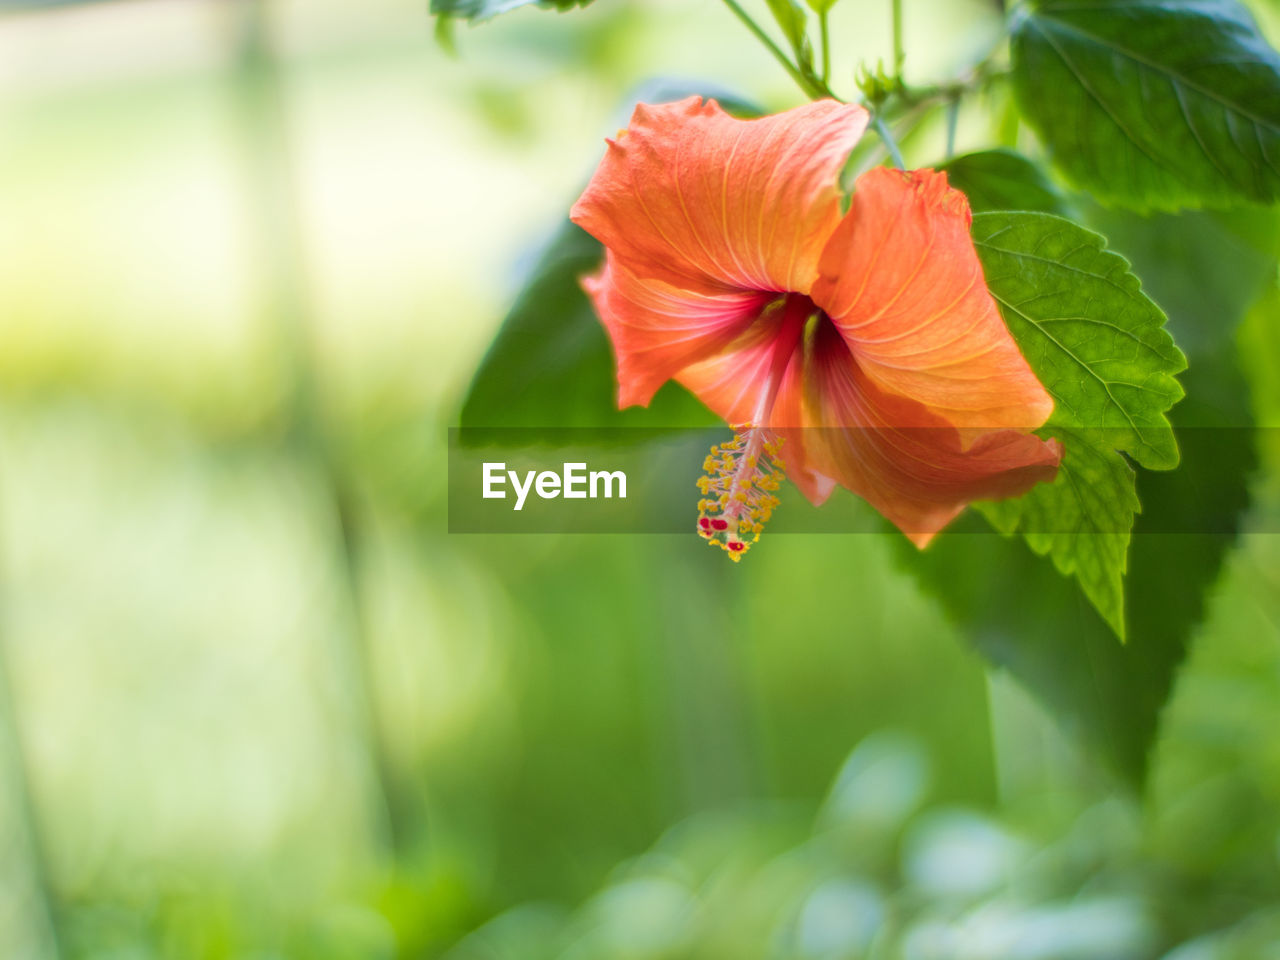 flowering plant, flower, fragility, vulnerability, beauty in nature, plant, growth, petal, freshness, flower head, close-up, inflorescence, hibiscus, red, green color, nature, focus on foreground, day, no people, pollen, pollination